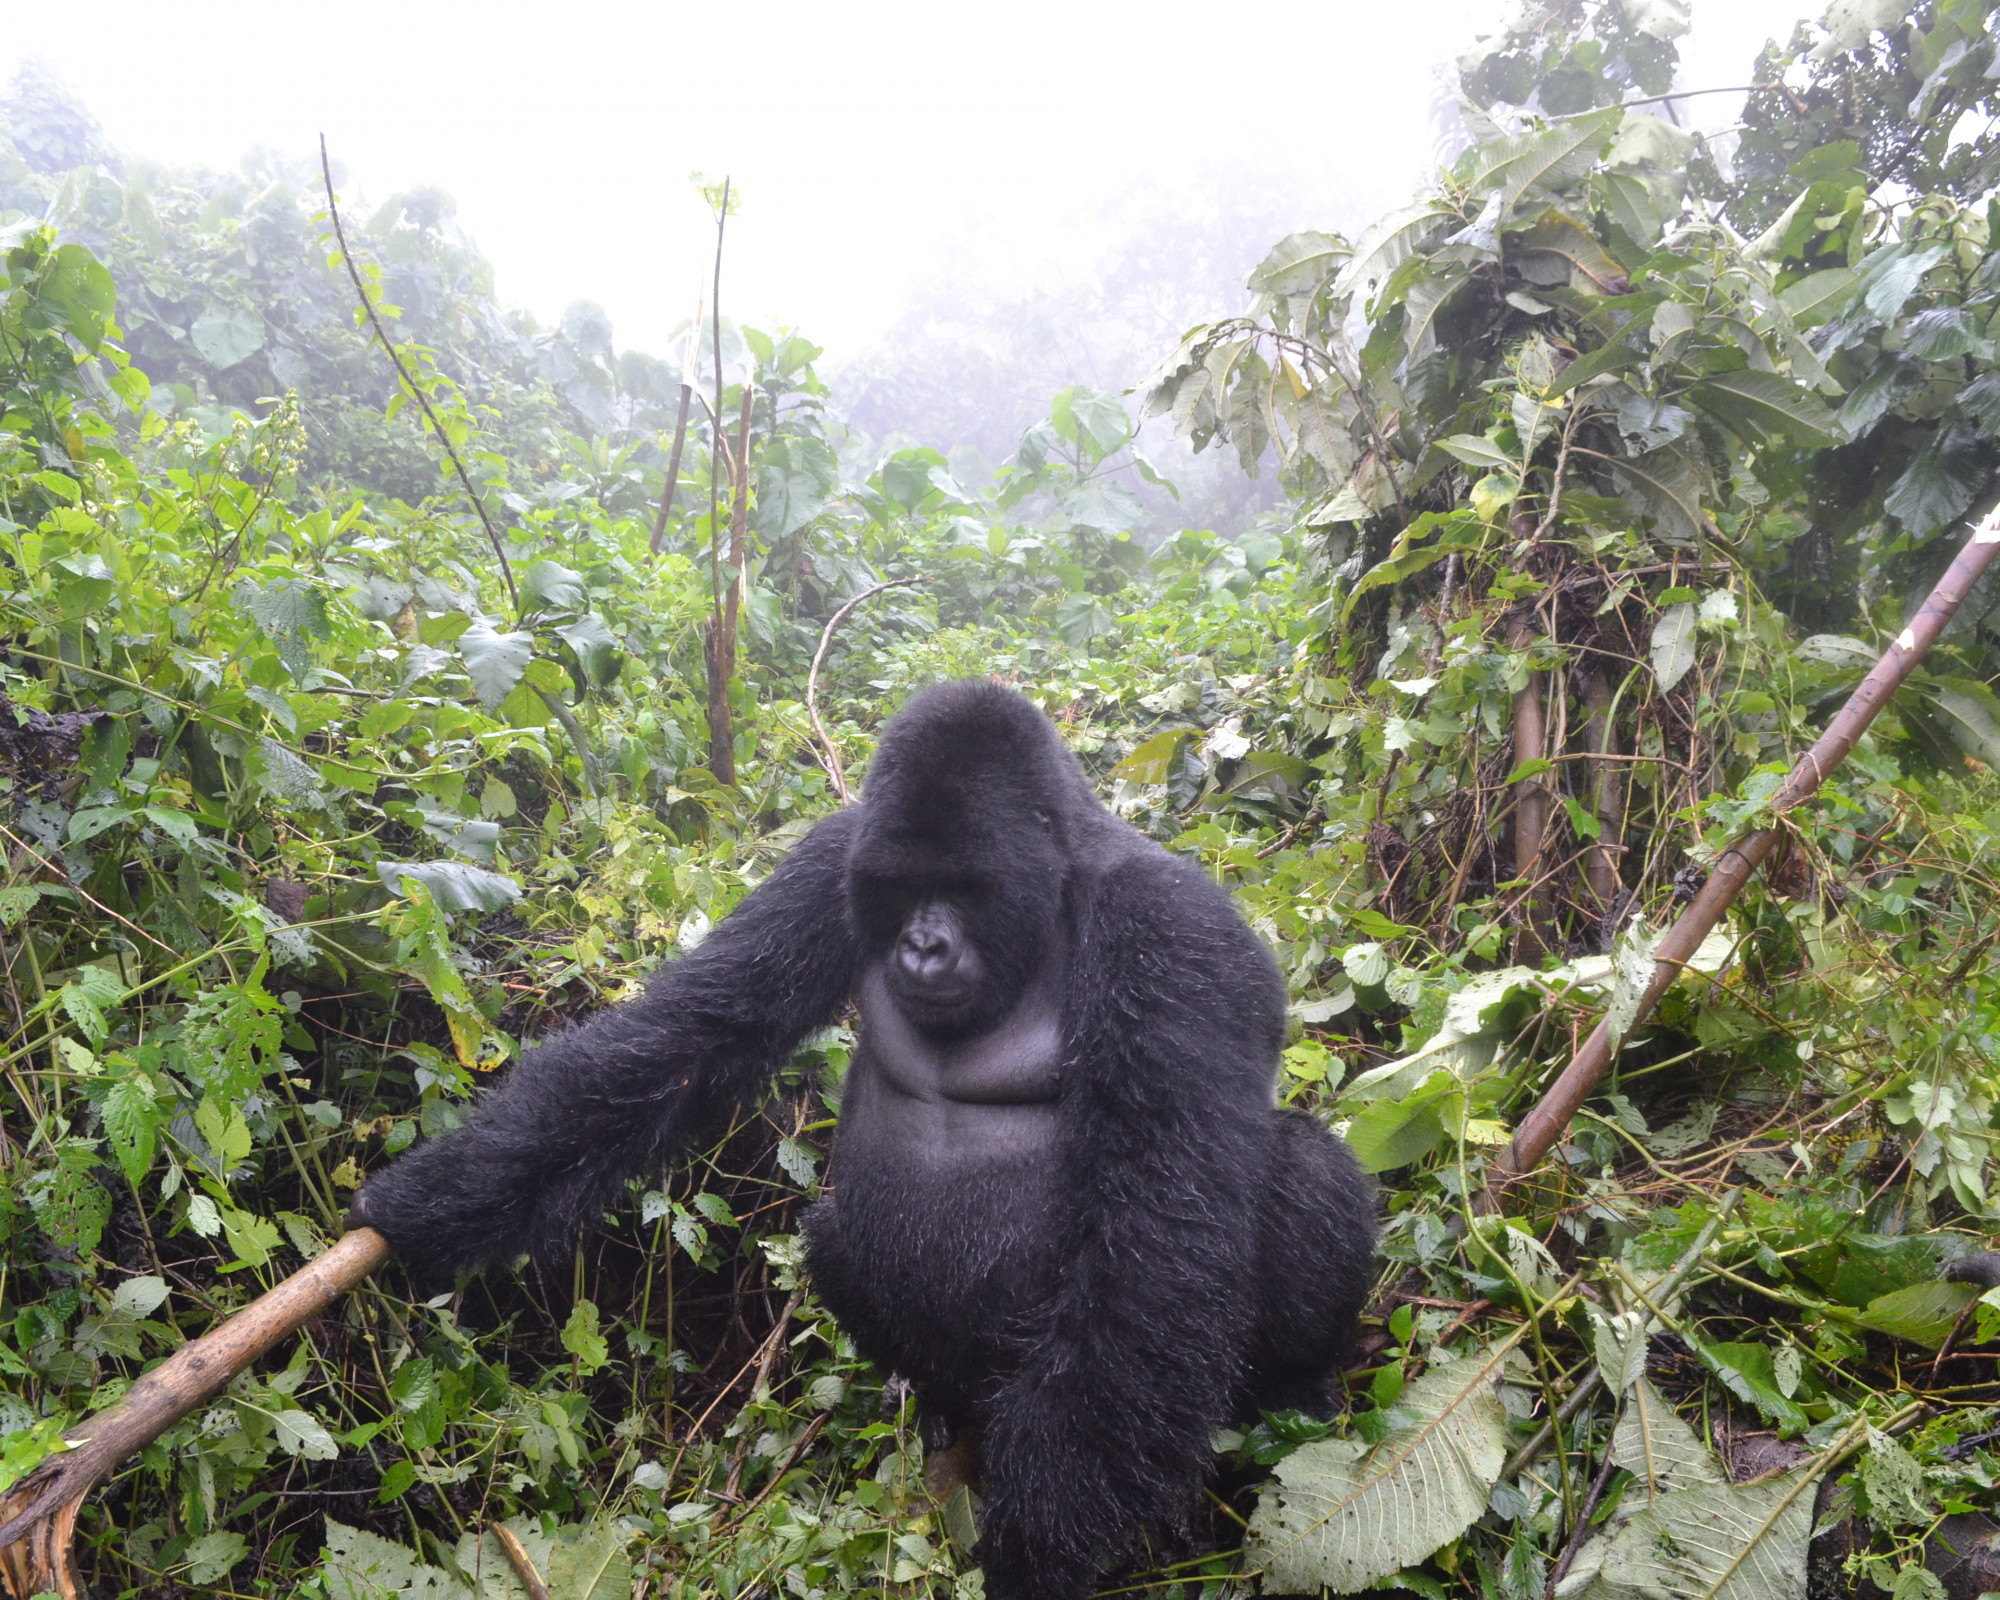 Photo 2: Parc Virunga en RDC